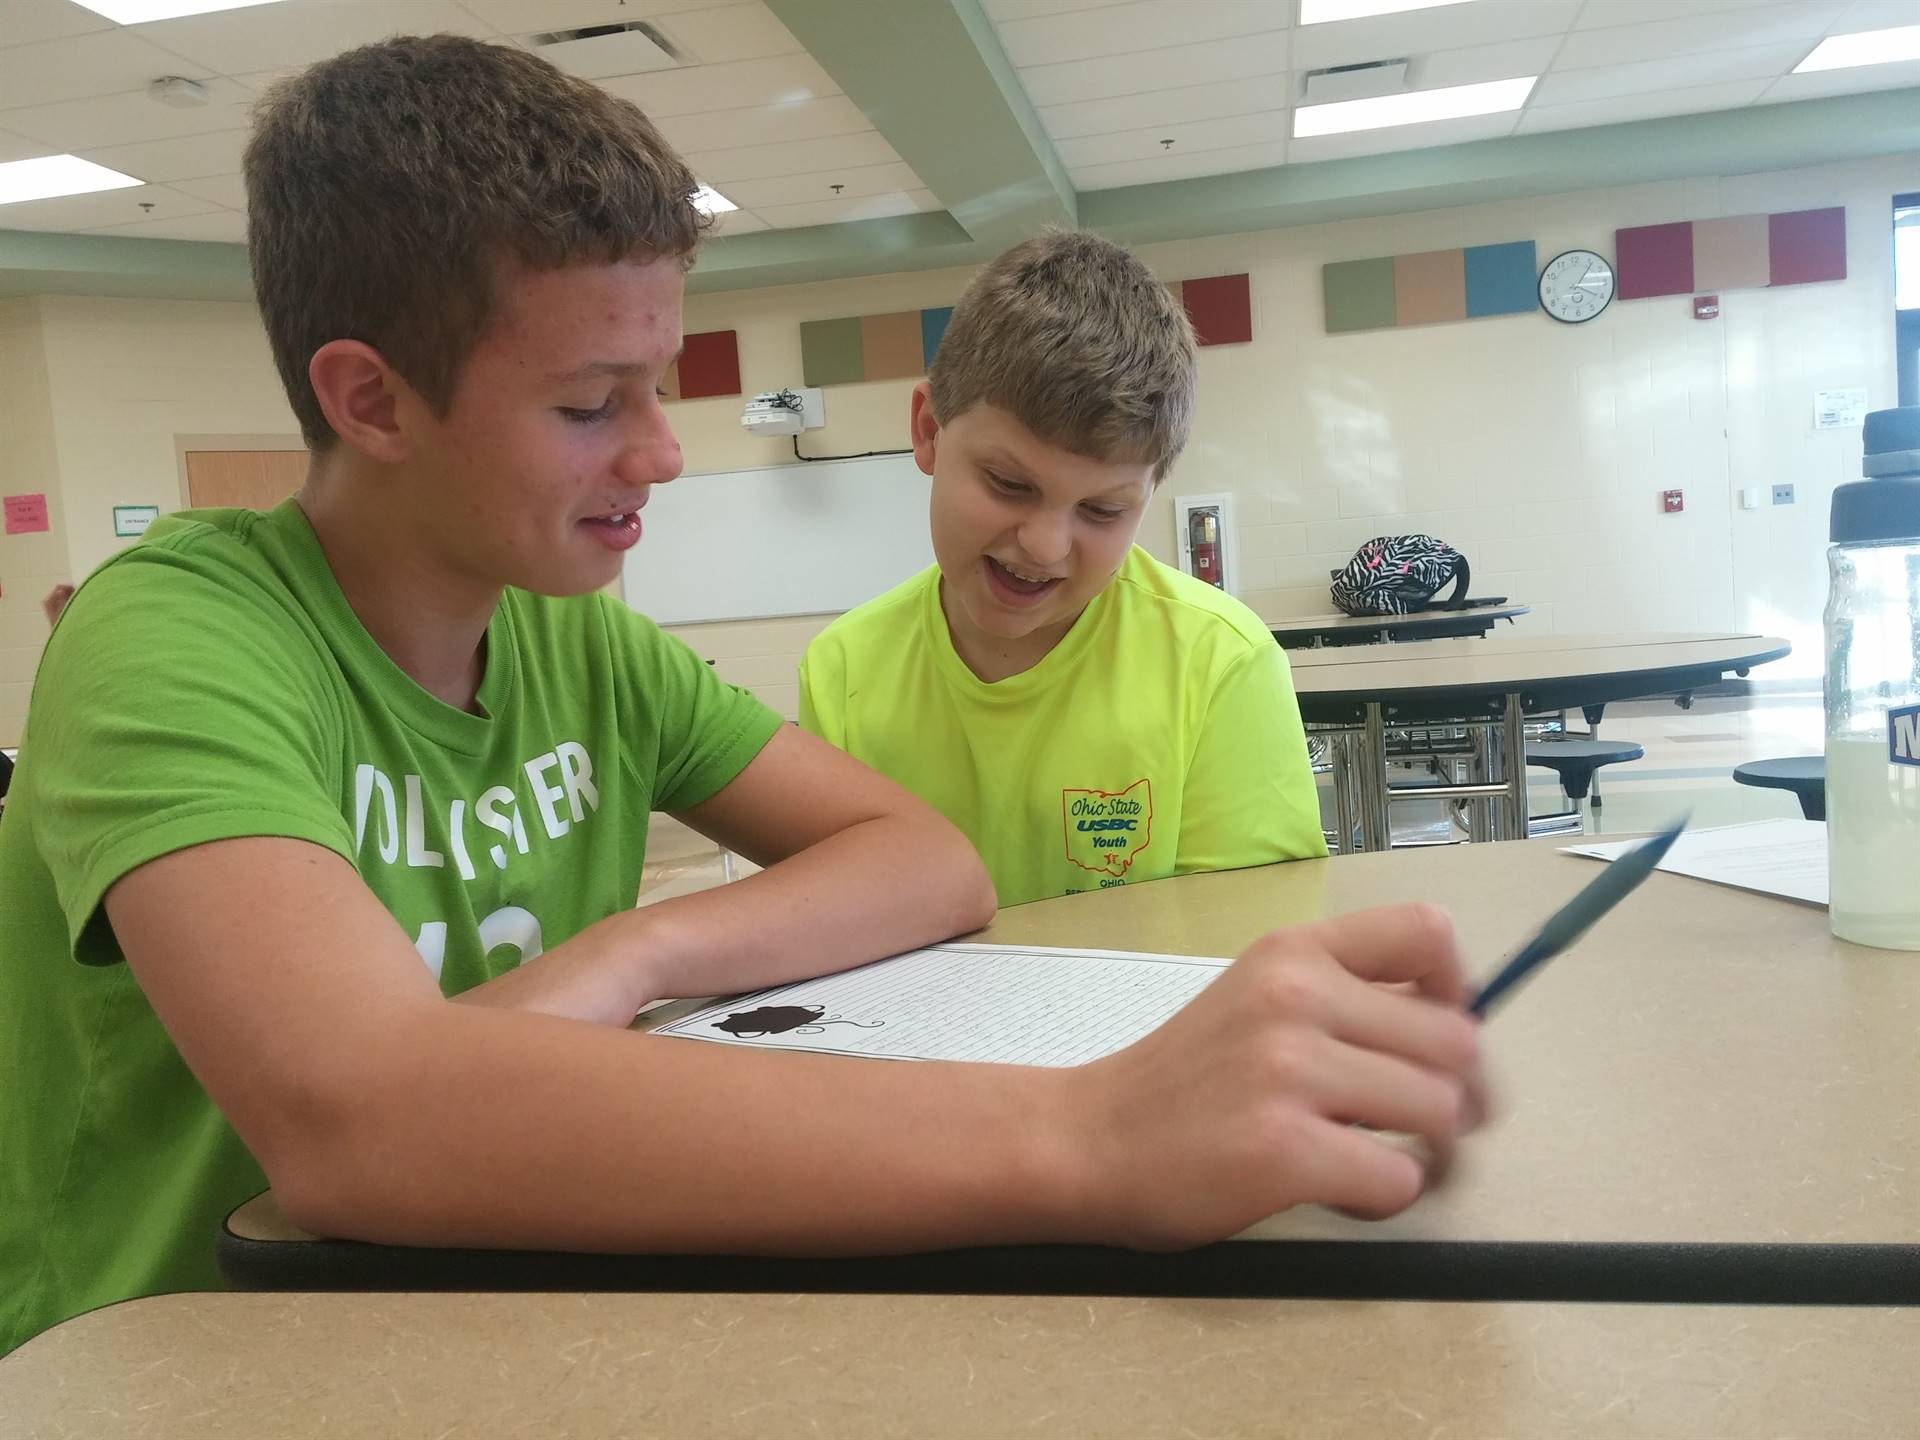 Joel and Cole helping each other with homework